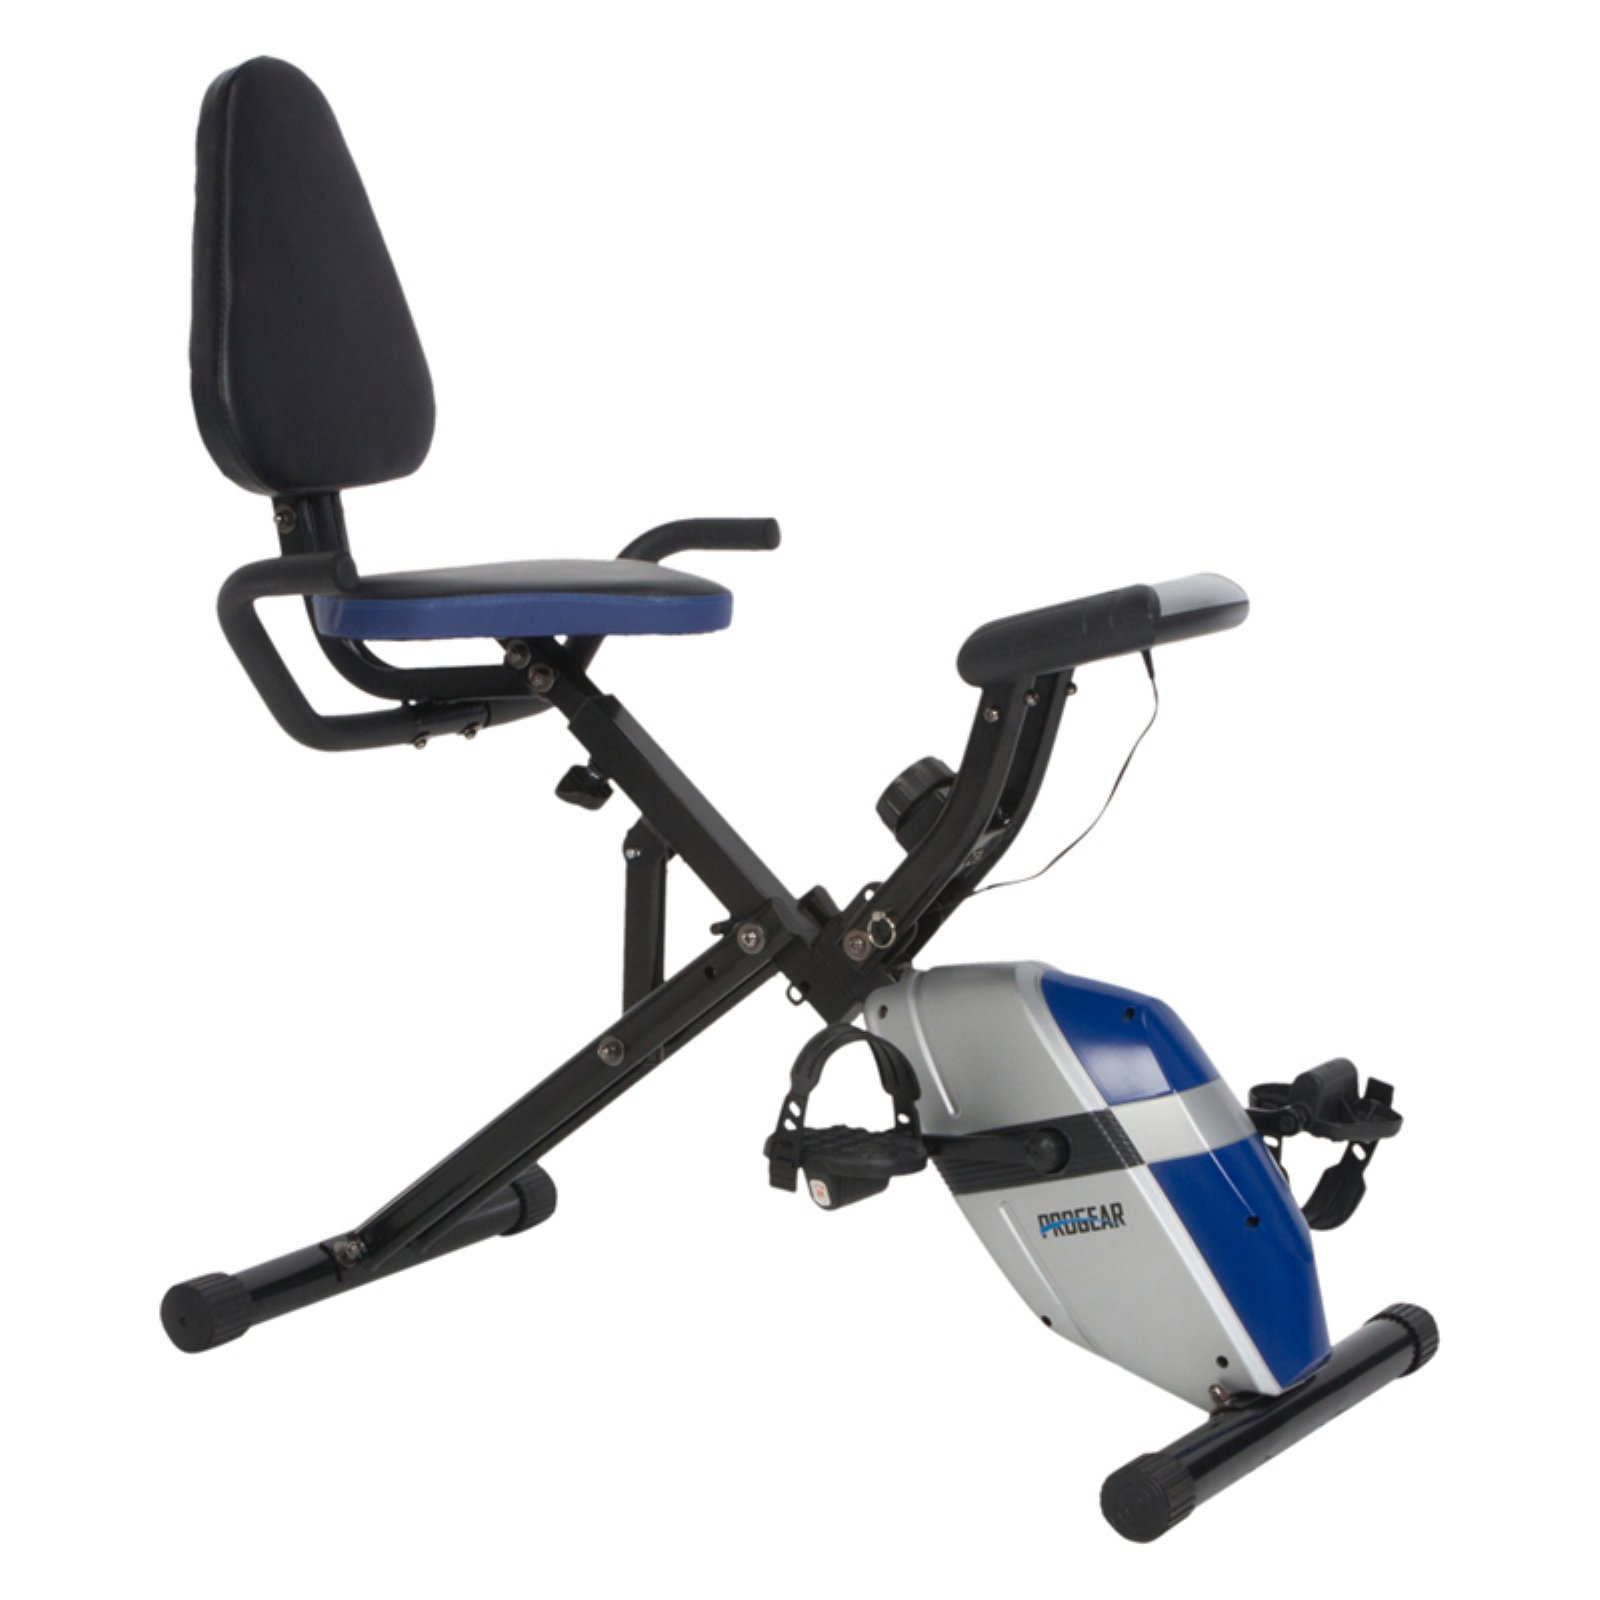 ProGear 190 Compact Recumbent Bike with Heart Pulse Sensors